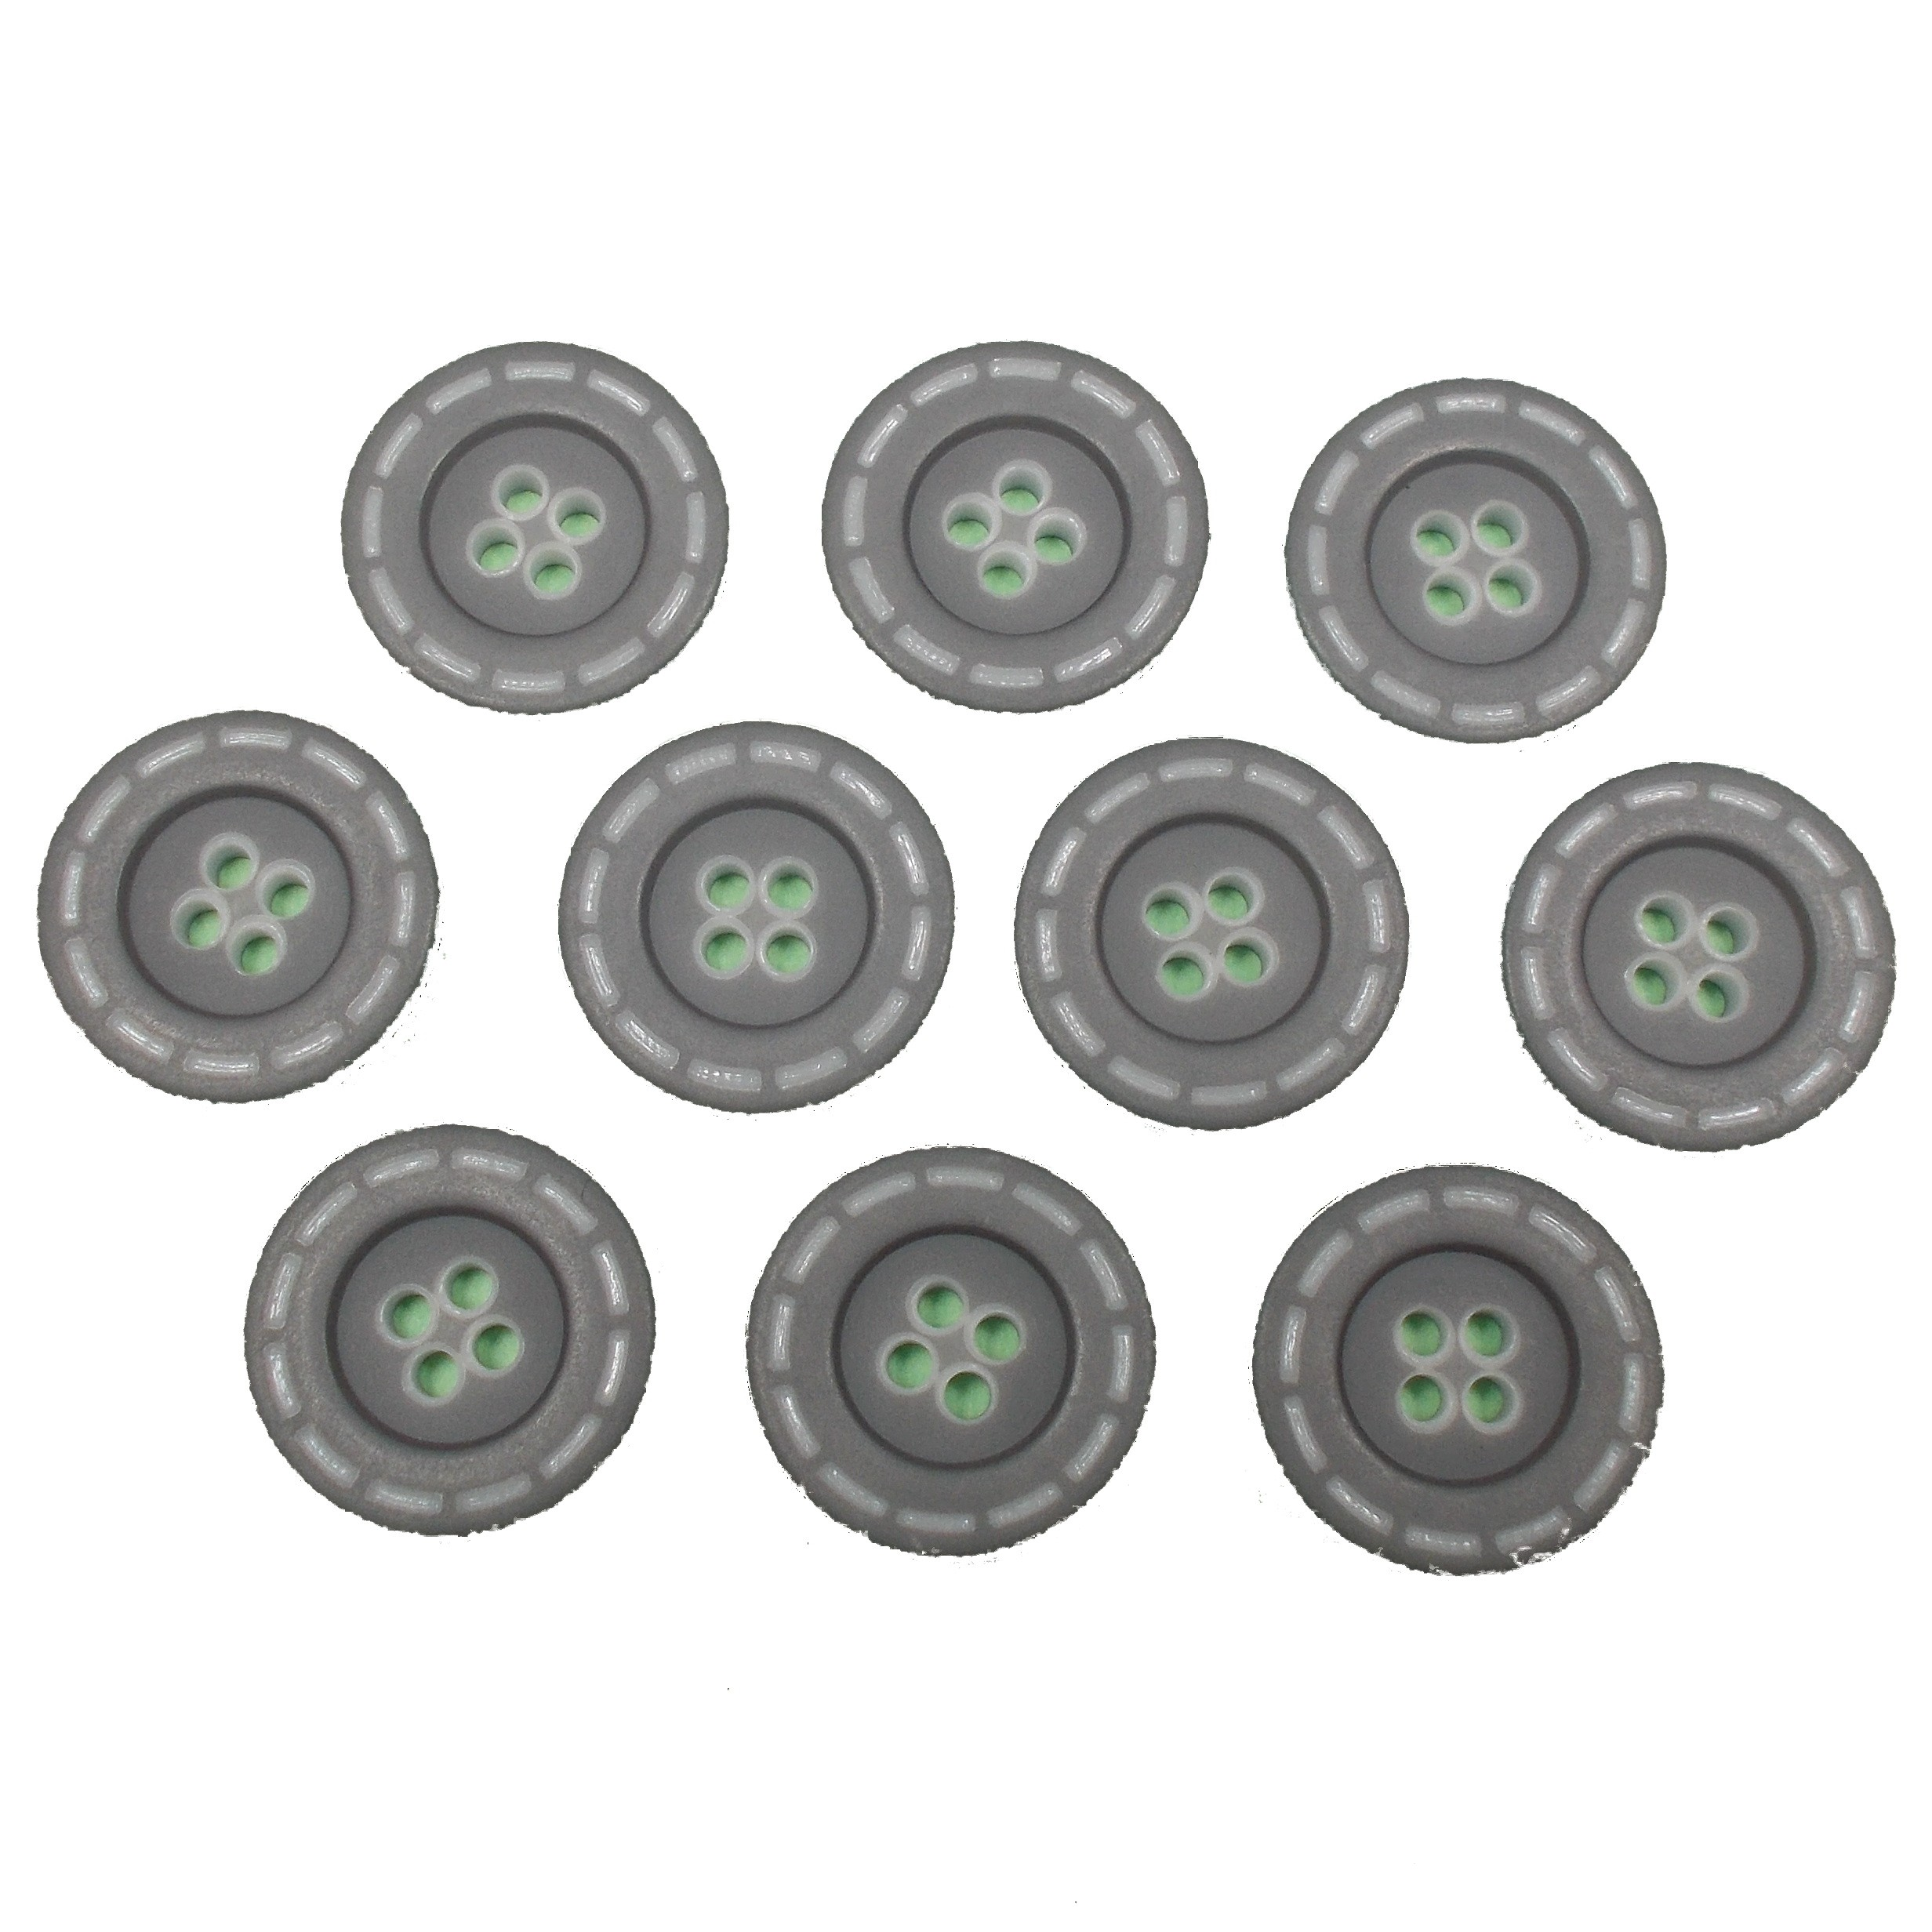 Stitched Edge Effect 4 Hole Buttons 17mm Grey Pack of 10